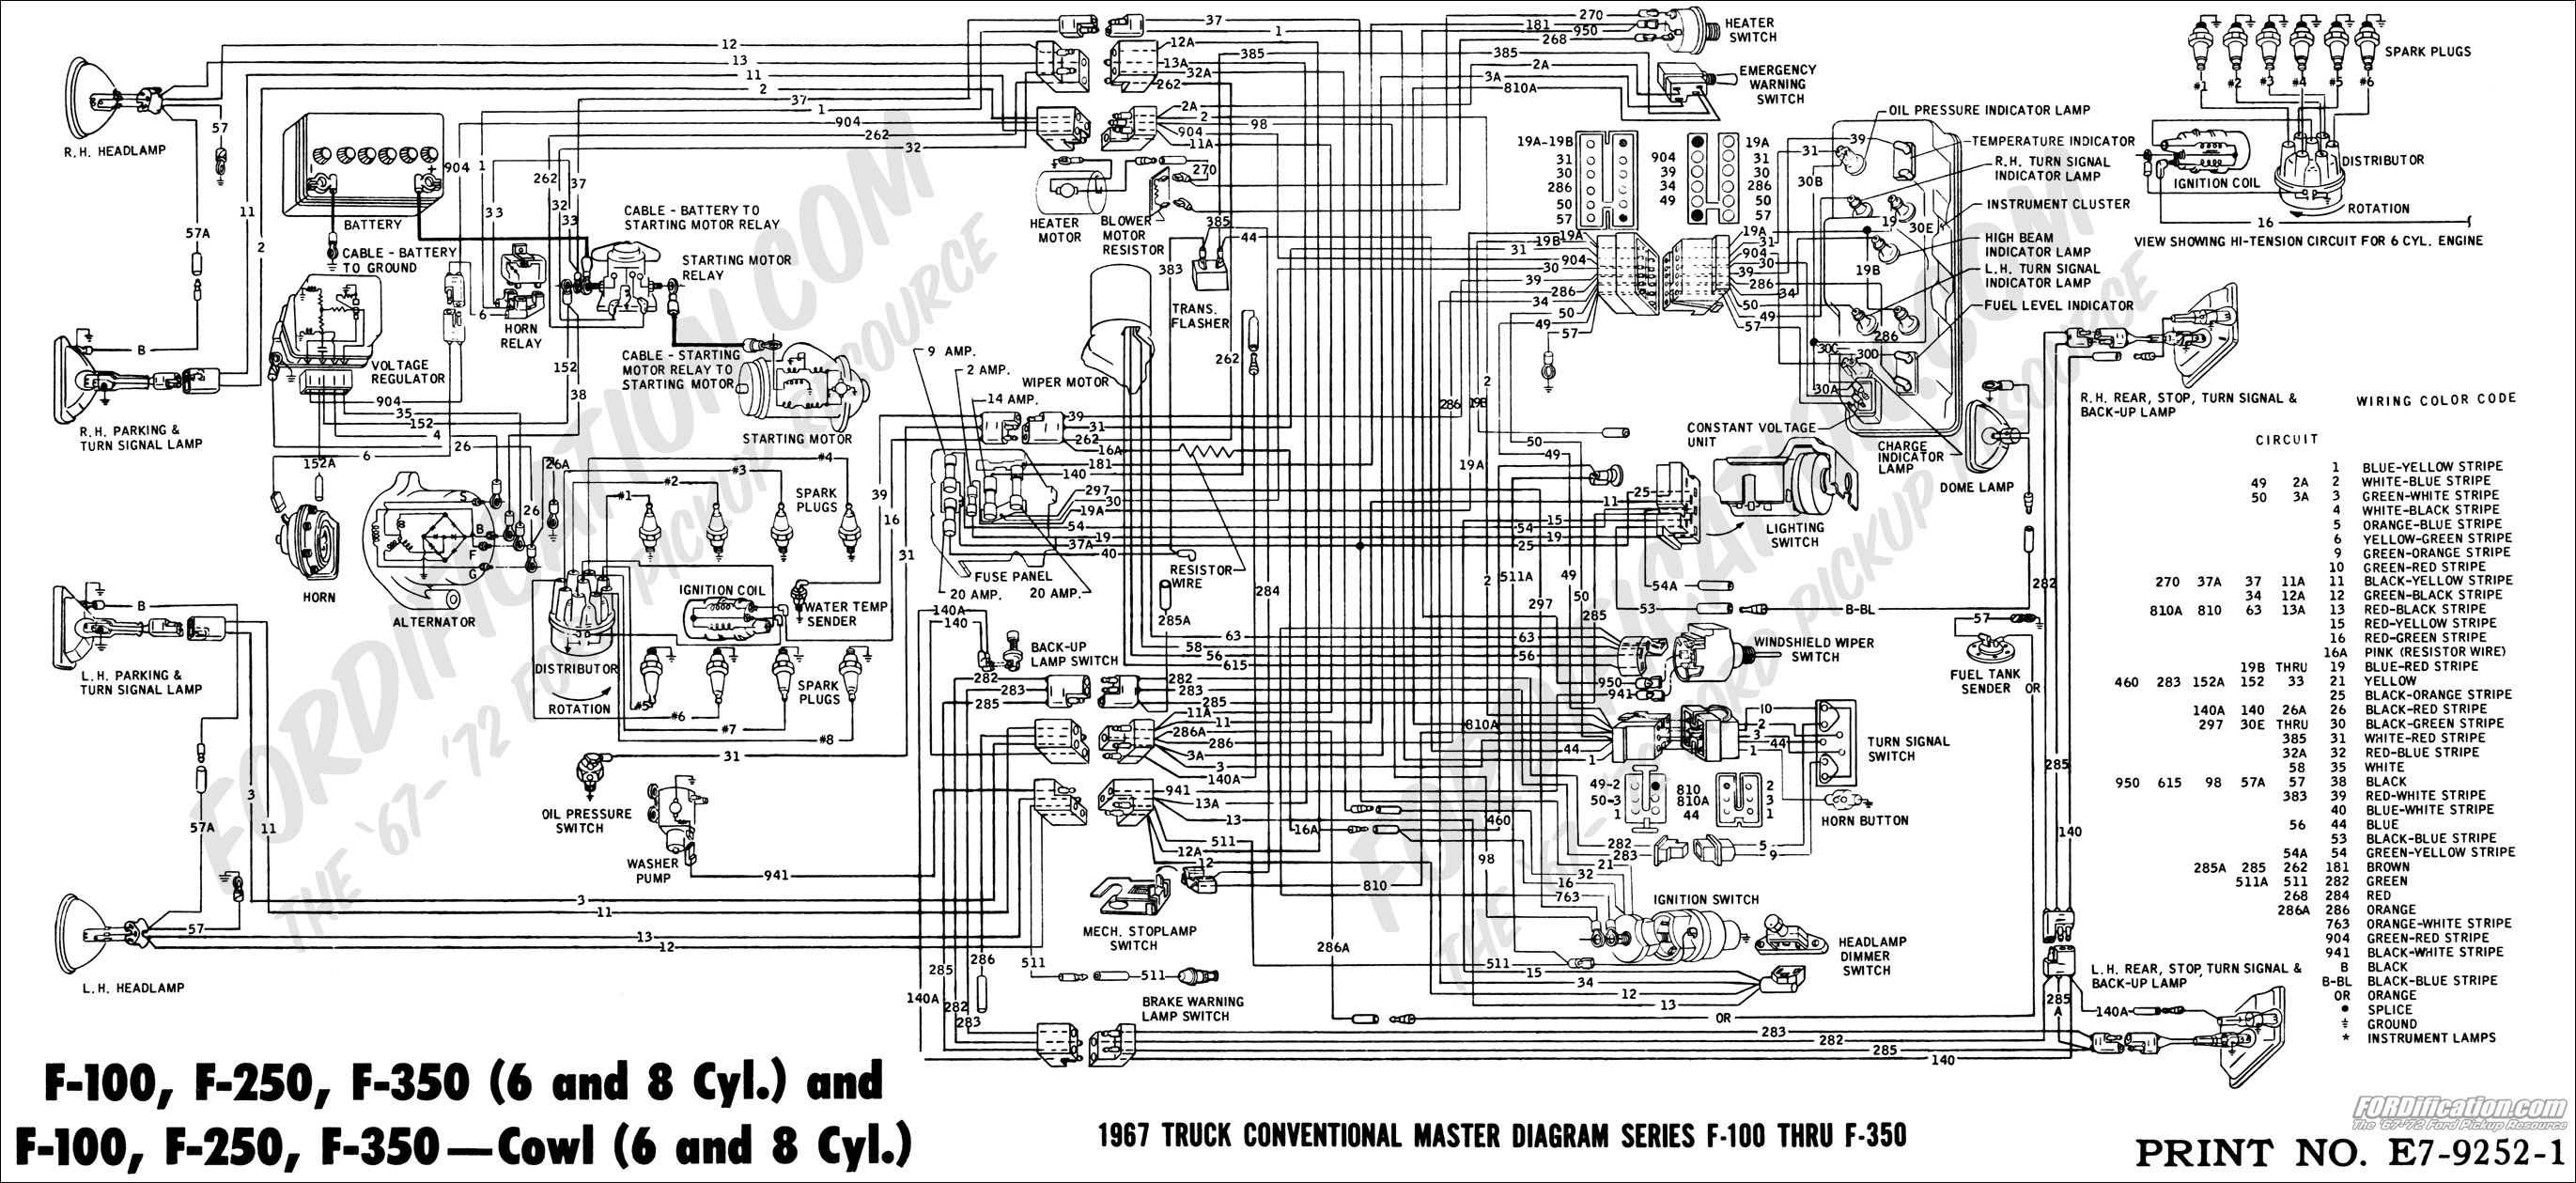 1984 Ford Pickup Wiring Diagram Trane Xe 1000 Parts Schematic For Wiring Diagram Schematics